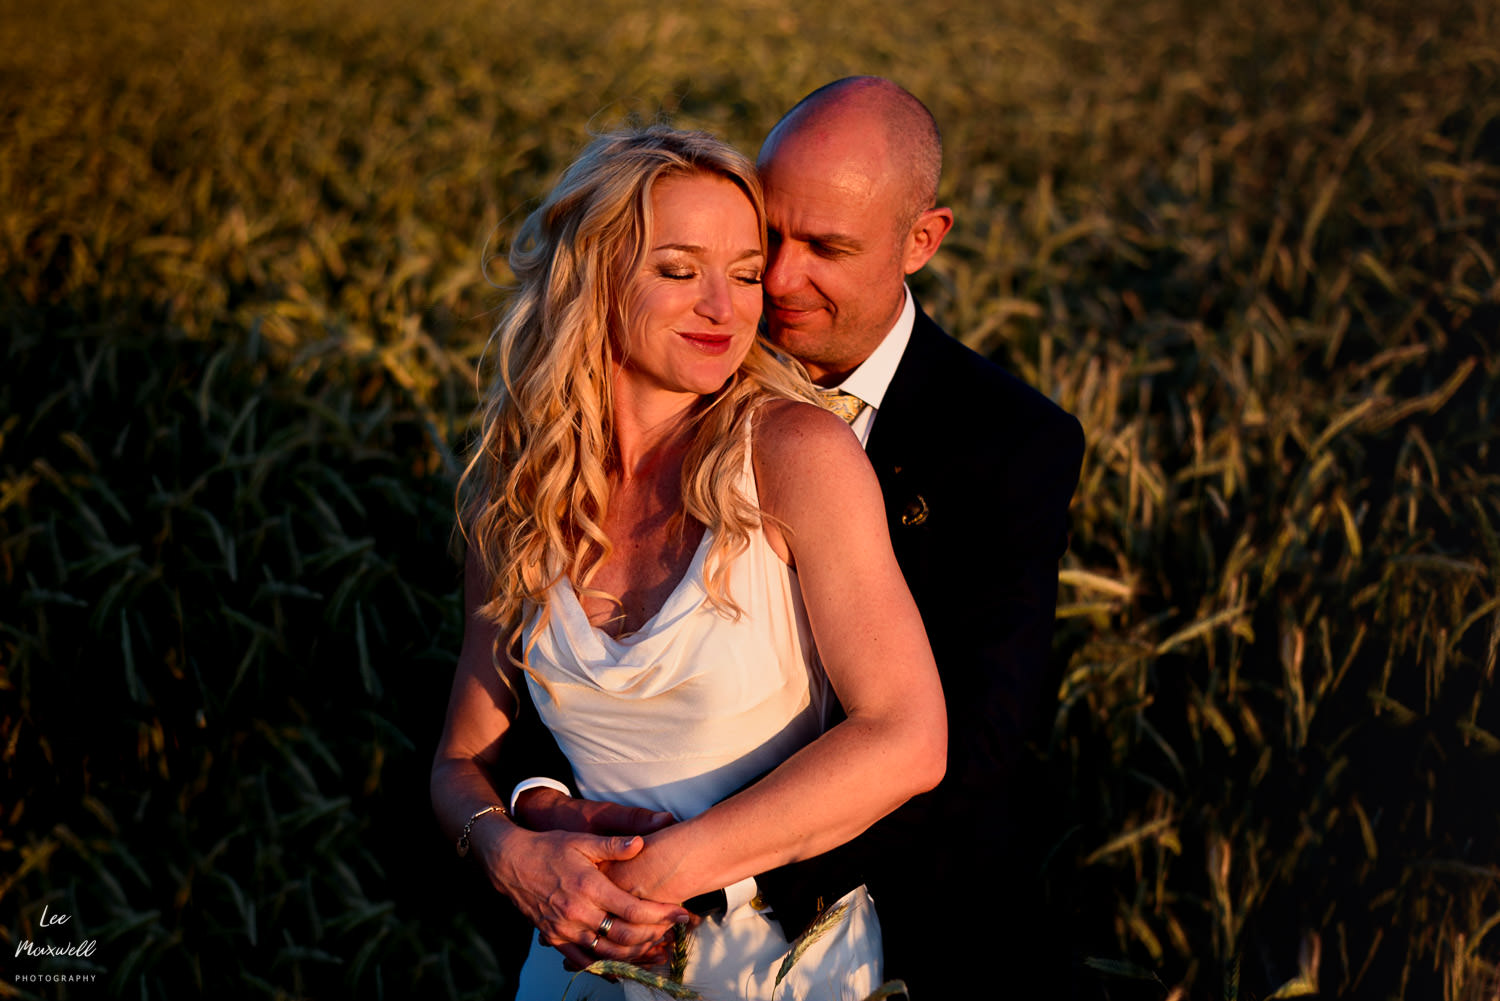 Relaxed wedding portrait in field